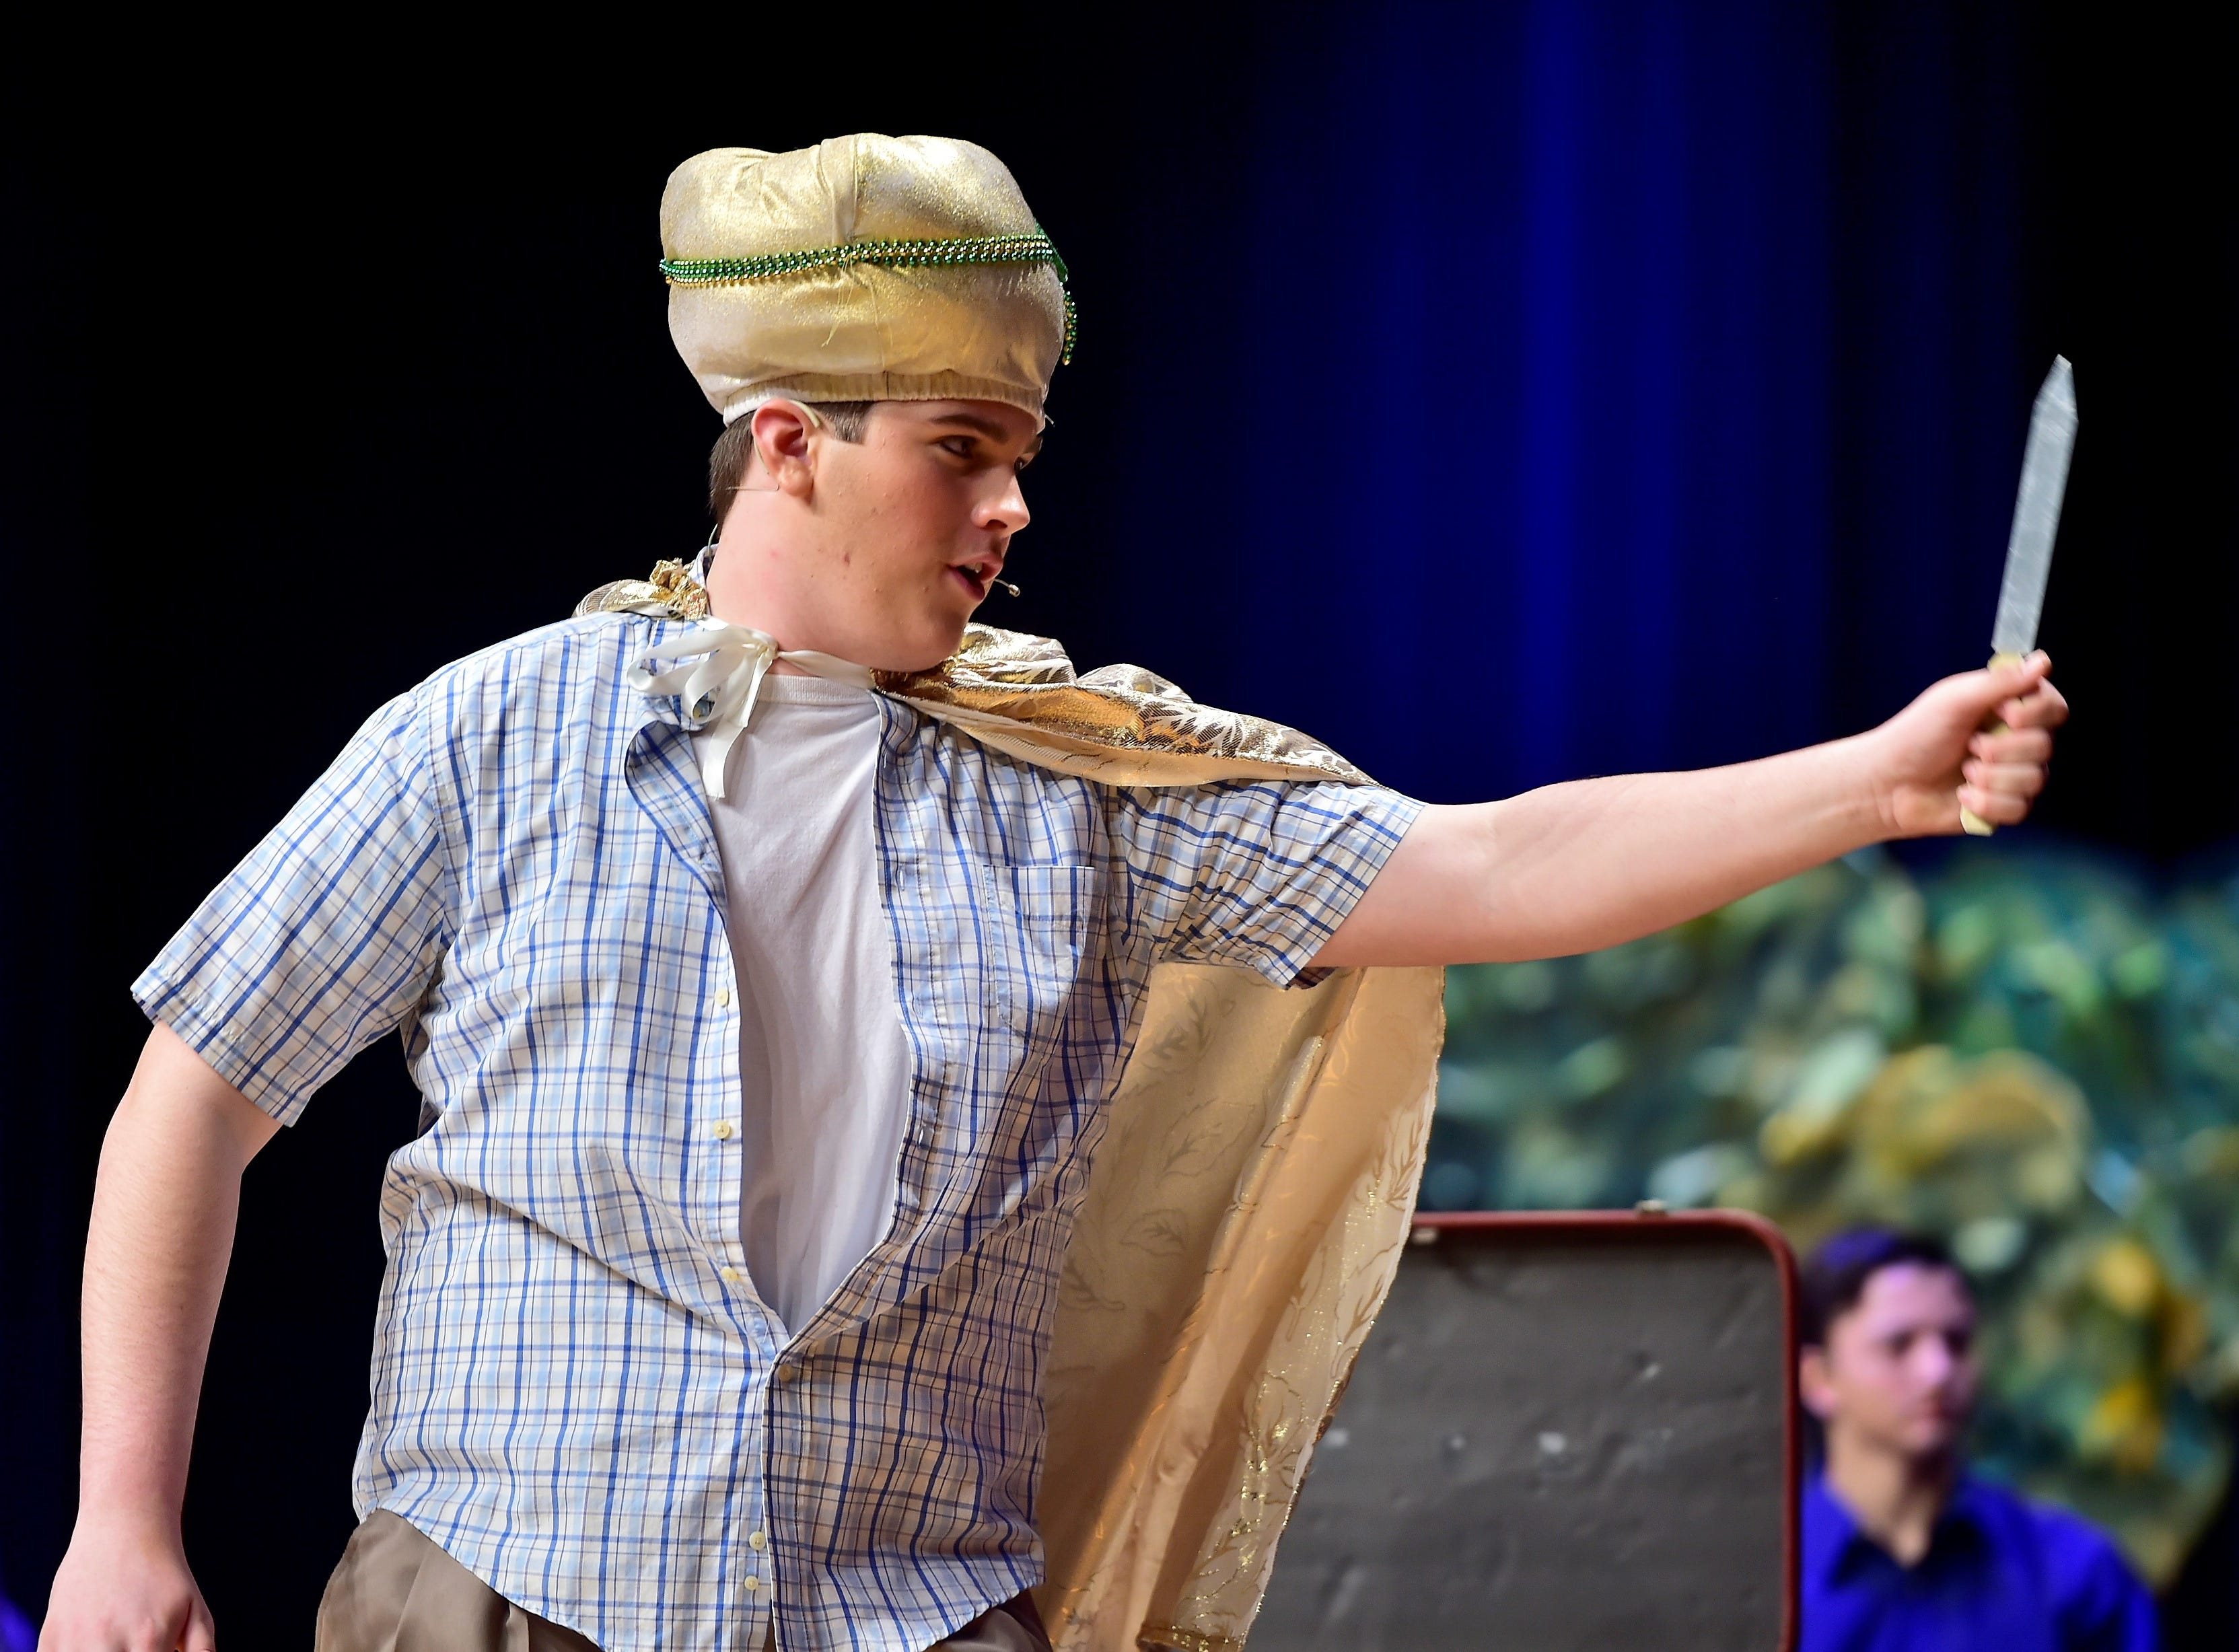 """Mason Swankler's Hines swaps his pajama-factory supervisor duties for being a knife-throwing showman, during a scene  from """"The Pajama Game,"""" on Sunday, March 10, 2019, at Waynesboro Area Senior High School. The musical, based on the 1953 novel, """"7 1/2 Cents"""" by Richard Bissell, tells the story of a pajama factory where workers are fighting for a raise of 7 1/2 cents. Showtimes for Waynesboro Area School District's All-School Production of """"The Pajama Game"""" are 7 p.m. Friday and Saturday, March 15 and 16, and 2 p.m. Sunday, March 17 in the high school auditorium. For choose-your-seat tickets, $10 for adults and $6 for children under 12, go to https://washsmusic.ticketleap.com/the-pajama-game/. General admission tickets will also be sold at the door."""